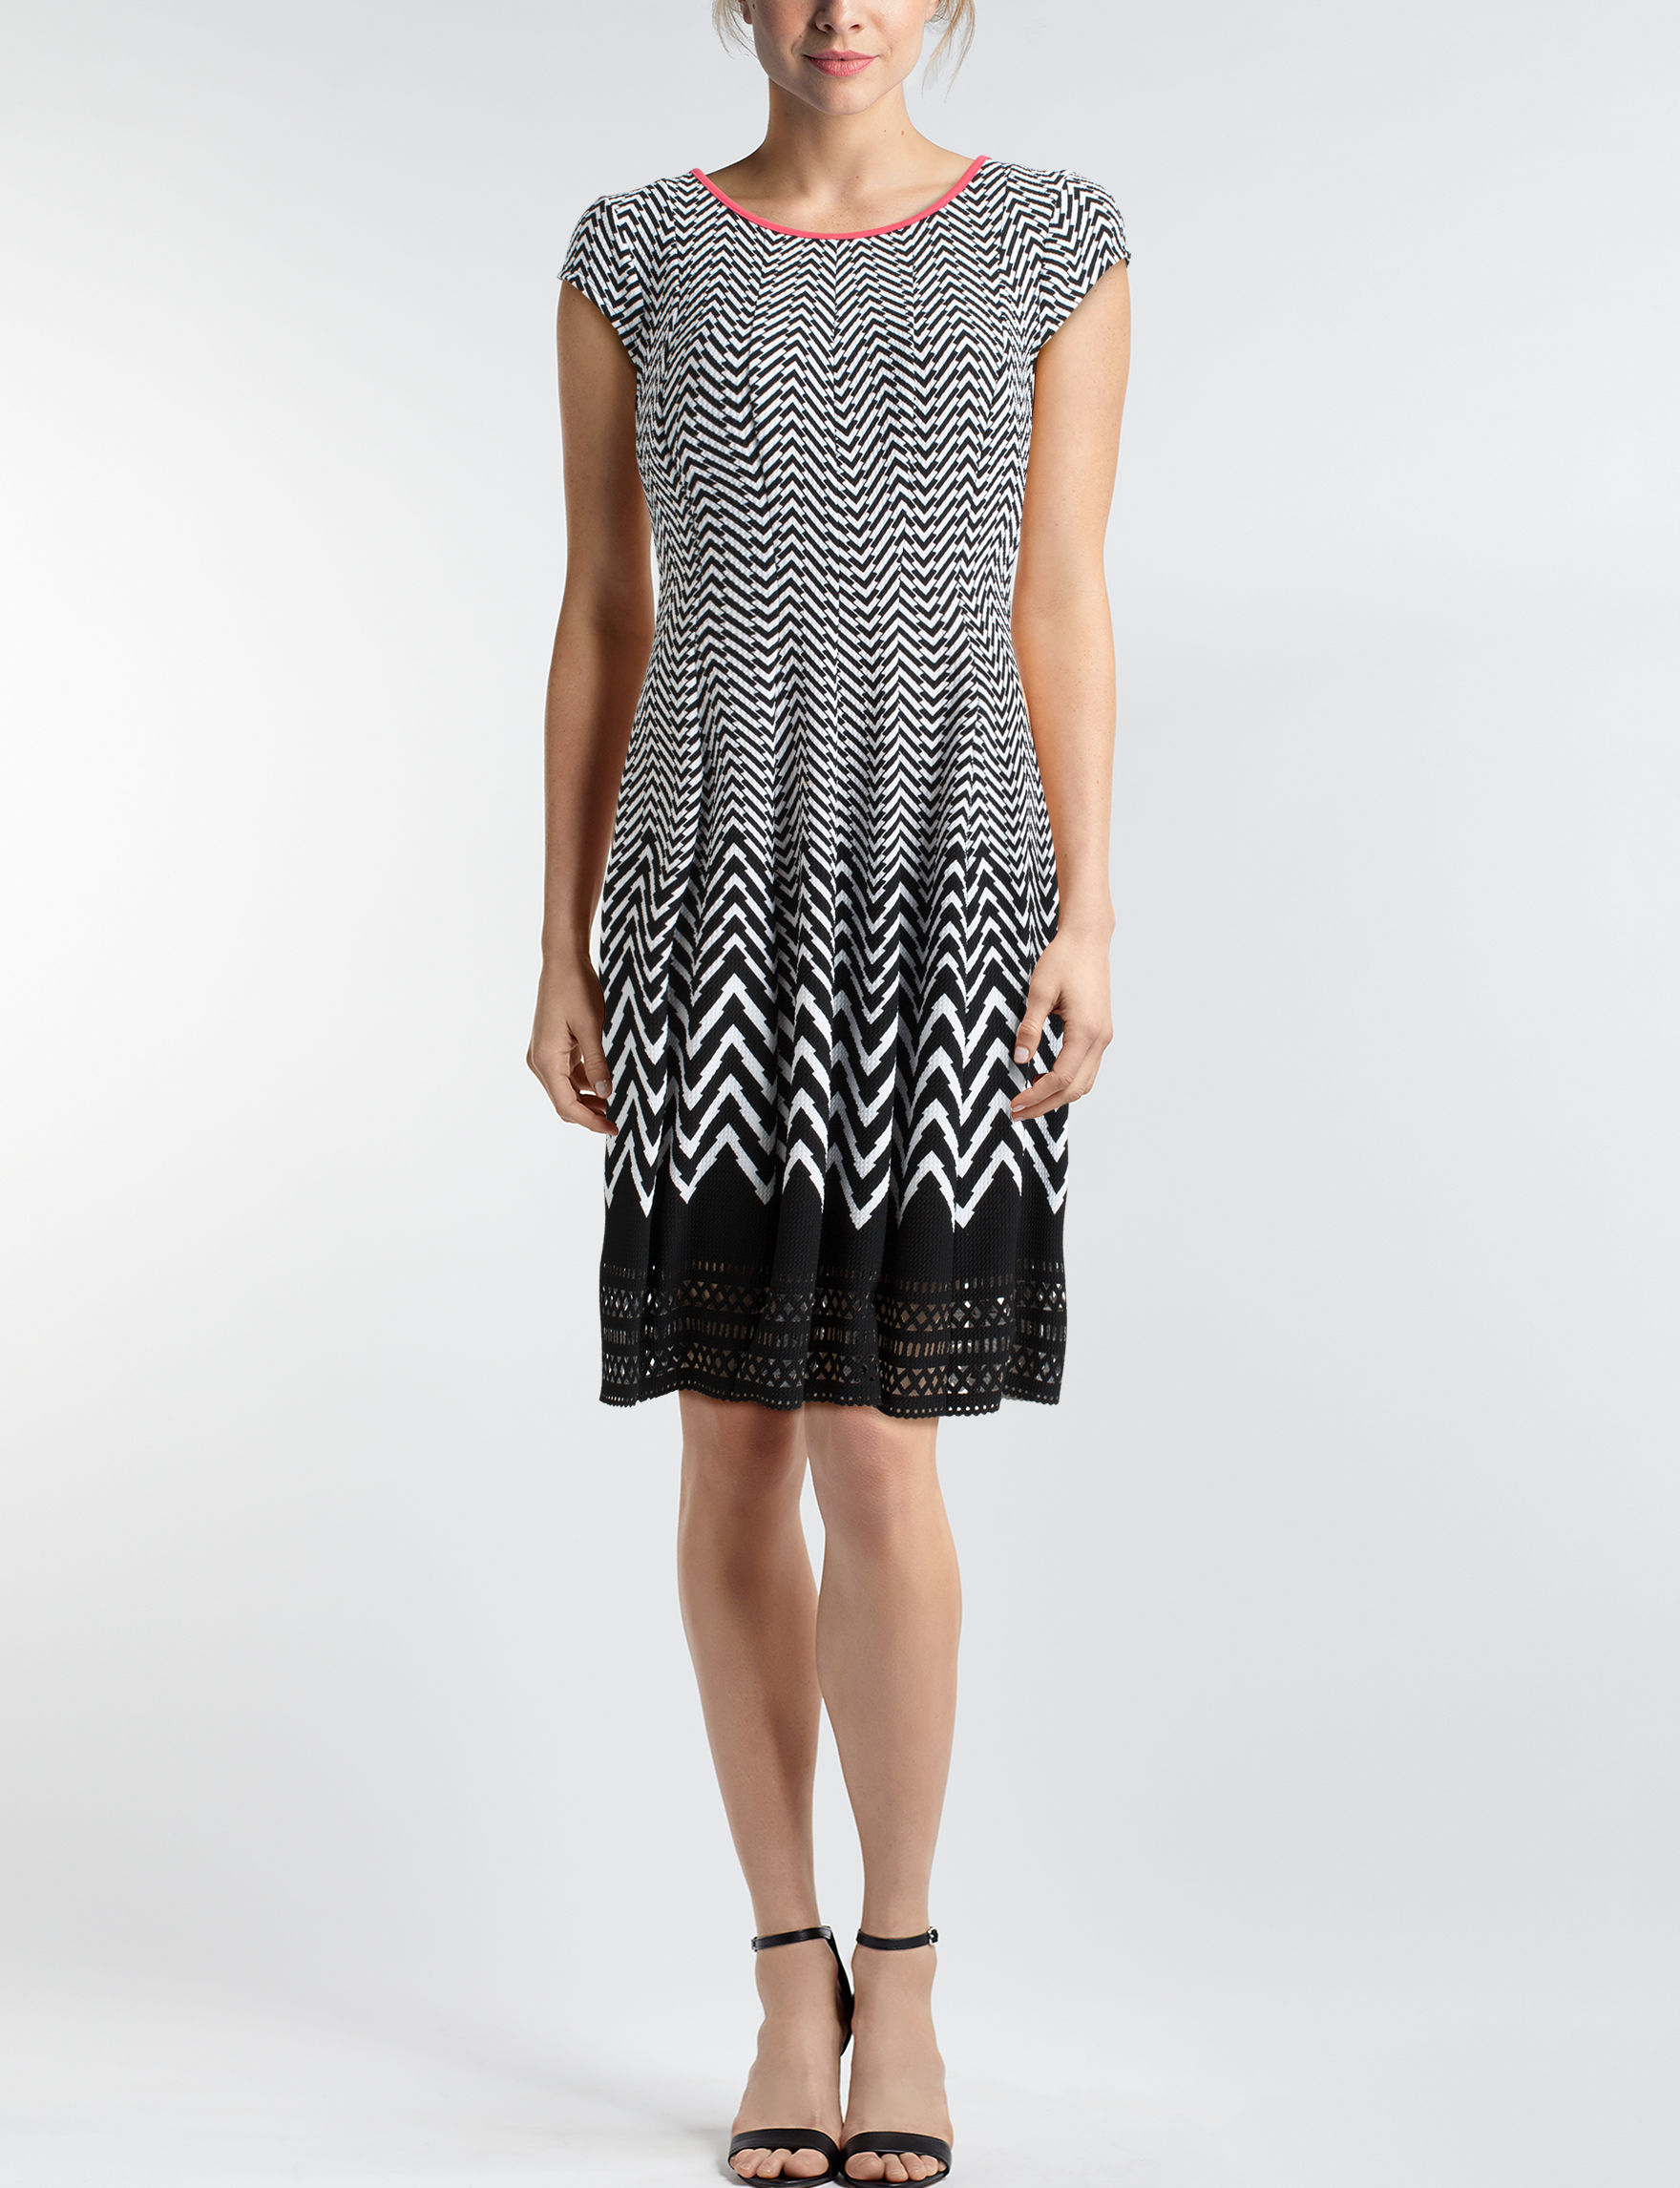 Robbie Bee Black / White Everyday & Casual A-line Dresses